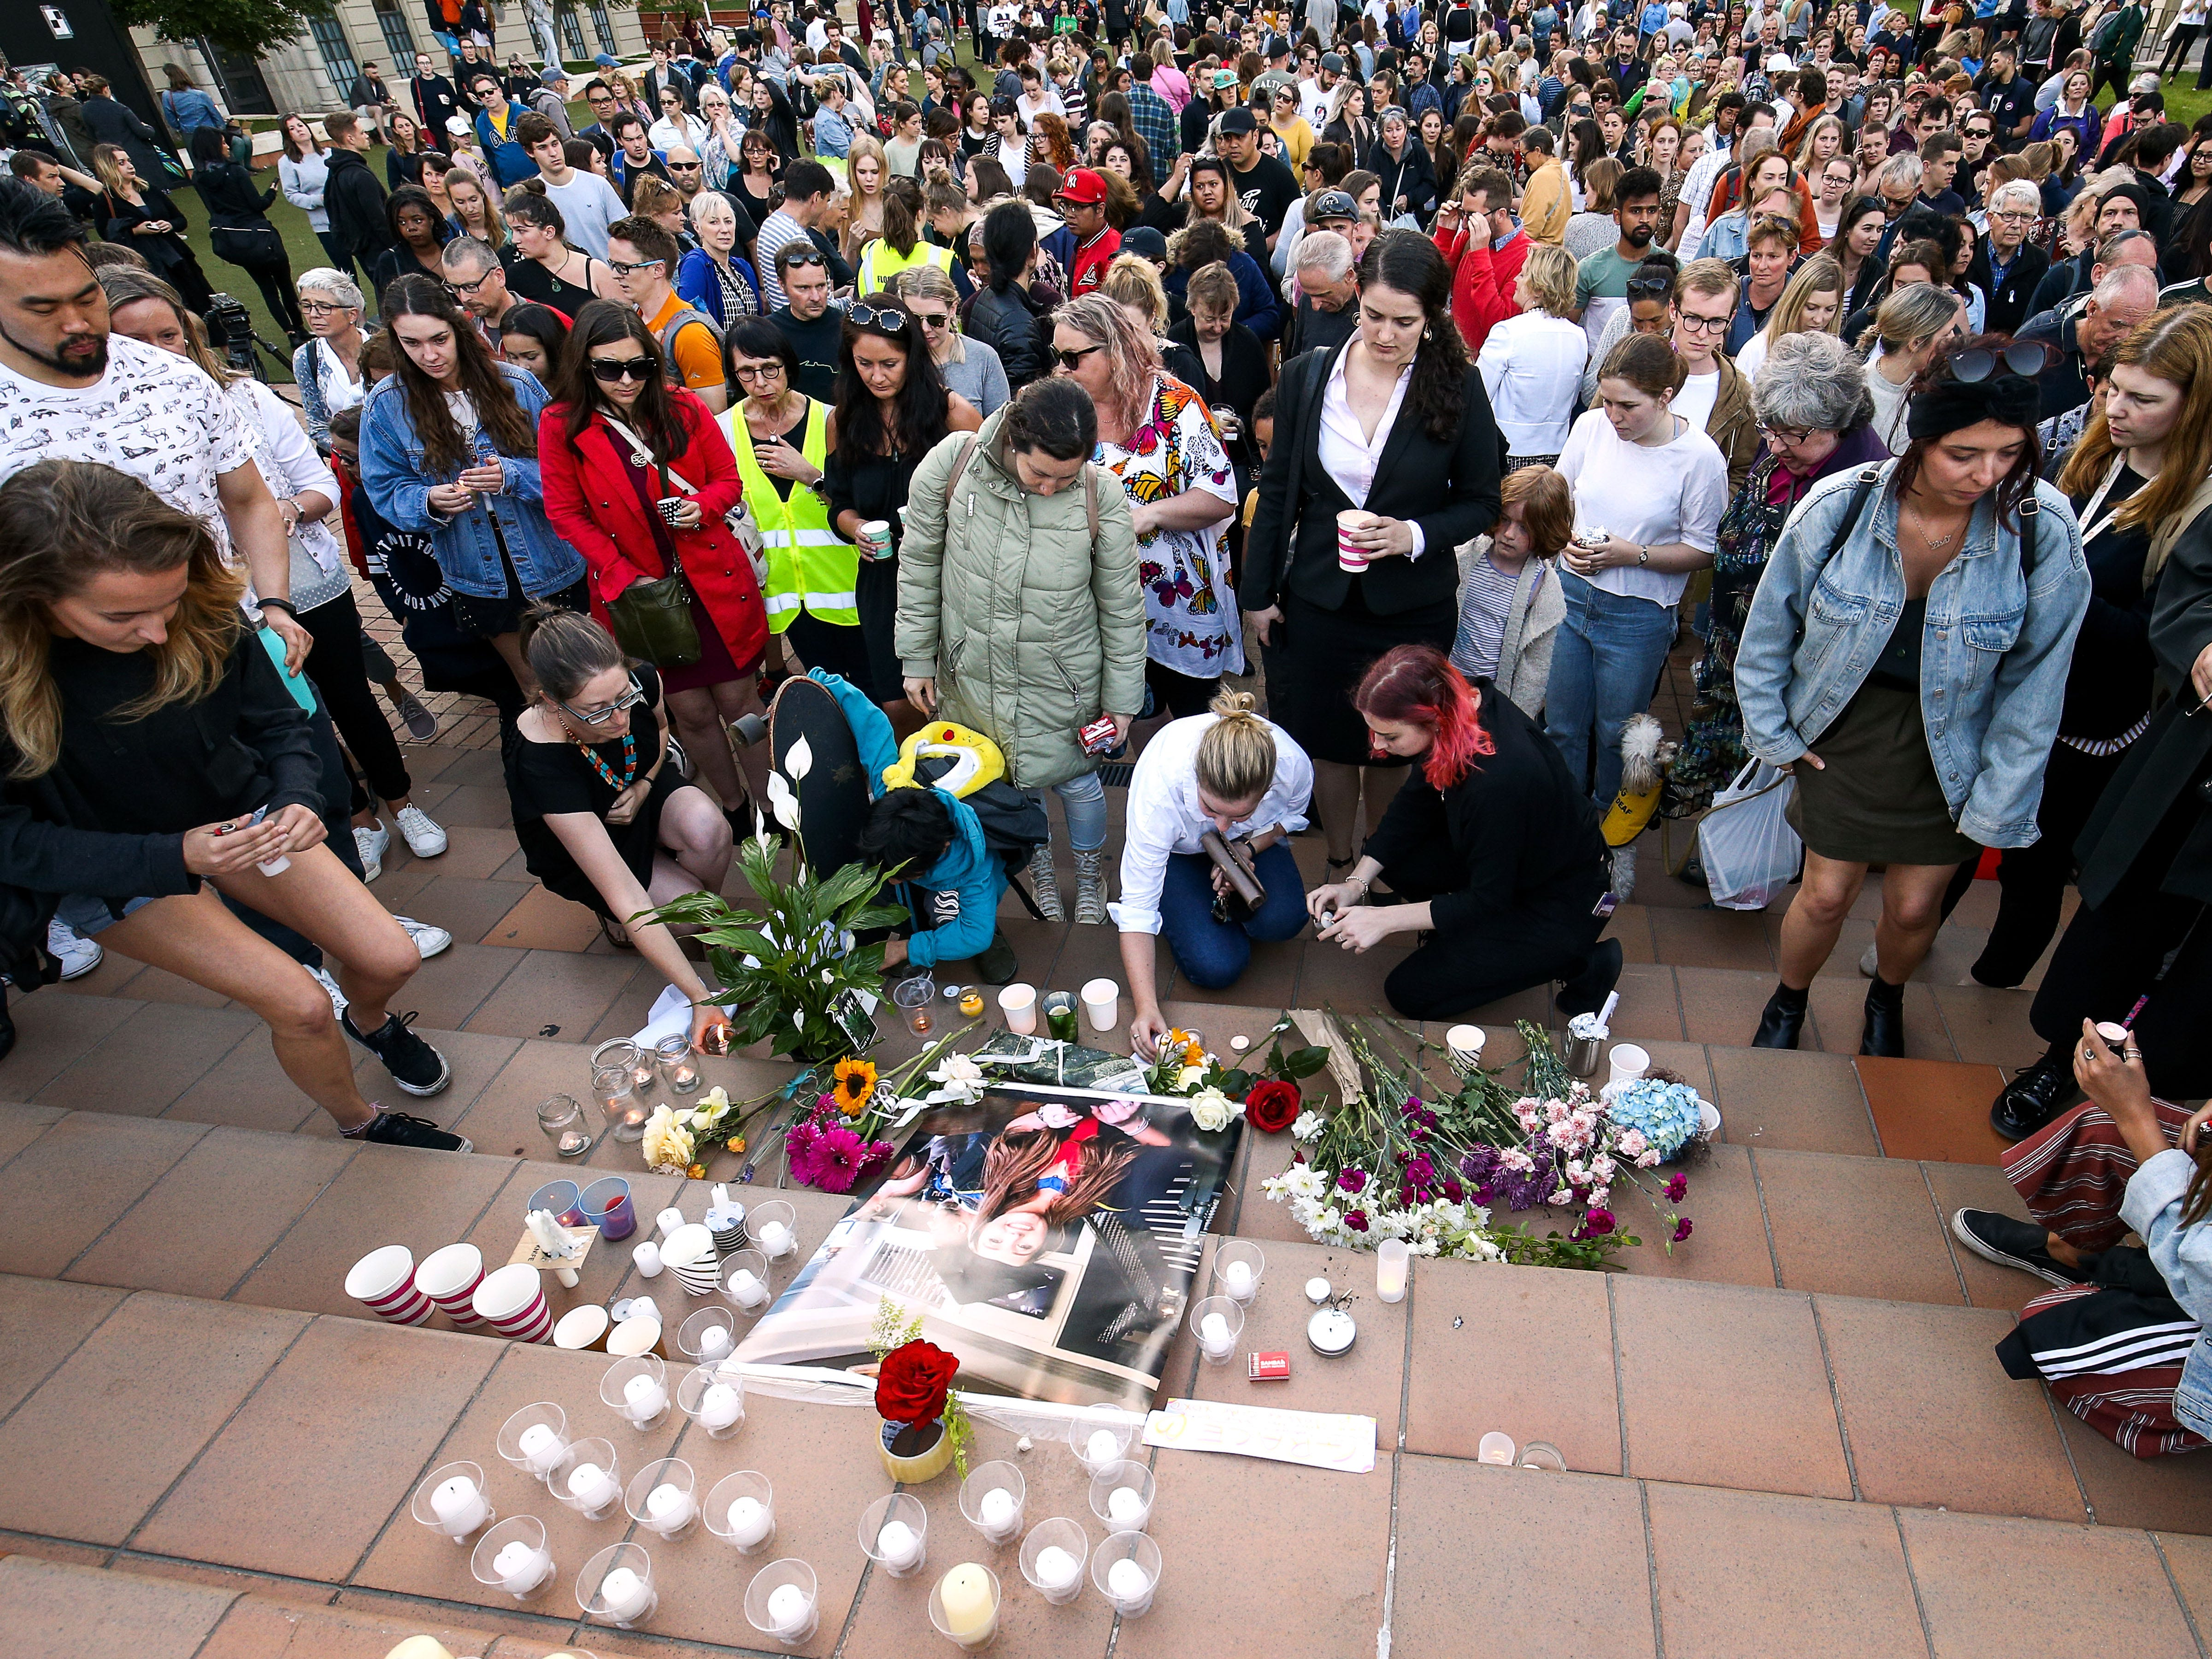 Members of the public pay their respects during a vigil for backpacker Grace Millane at Civic Square on Dec. 12, 2018 in Wellington, New Zealand. The body of the 22-year-old was found in a section of bush near West Auckland's Waitakere Ranges on Sunday, following an extensive search for the British tourist. She was seen on Saturday, Dec. 1 at the CityLIfe hotel in Auckland. A 26-year-old man appeared in Auckland District Court on Monday charged with her murder. The judge granted a suppression order prohibiting the publication of the accused's name.